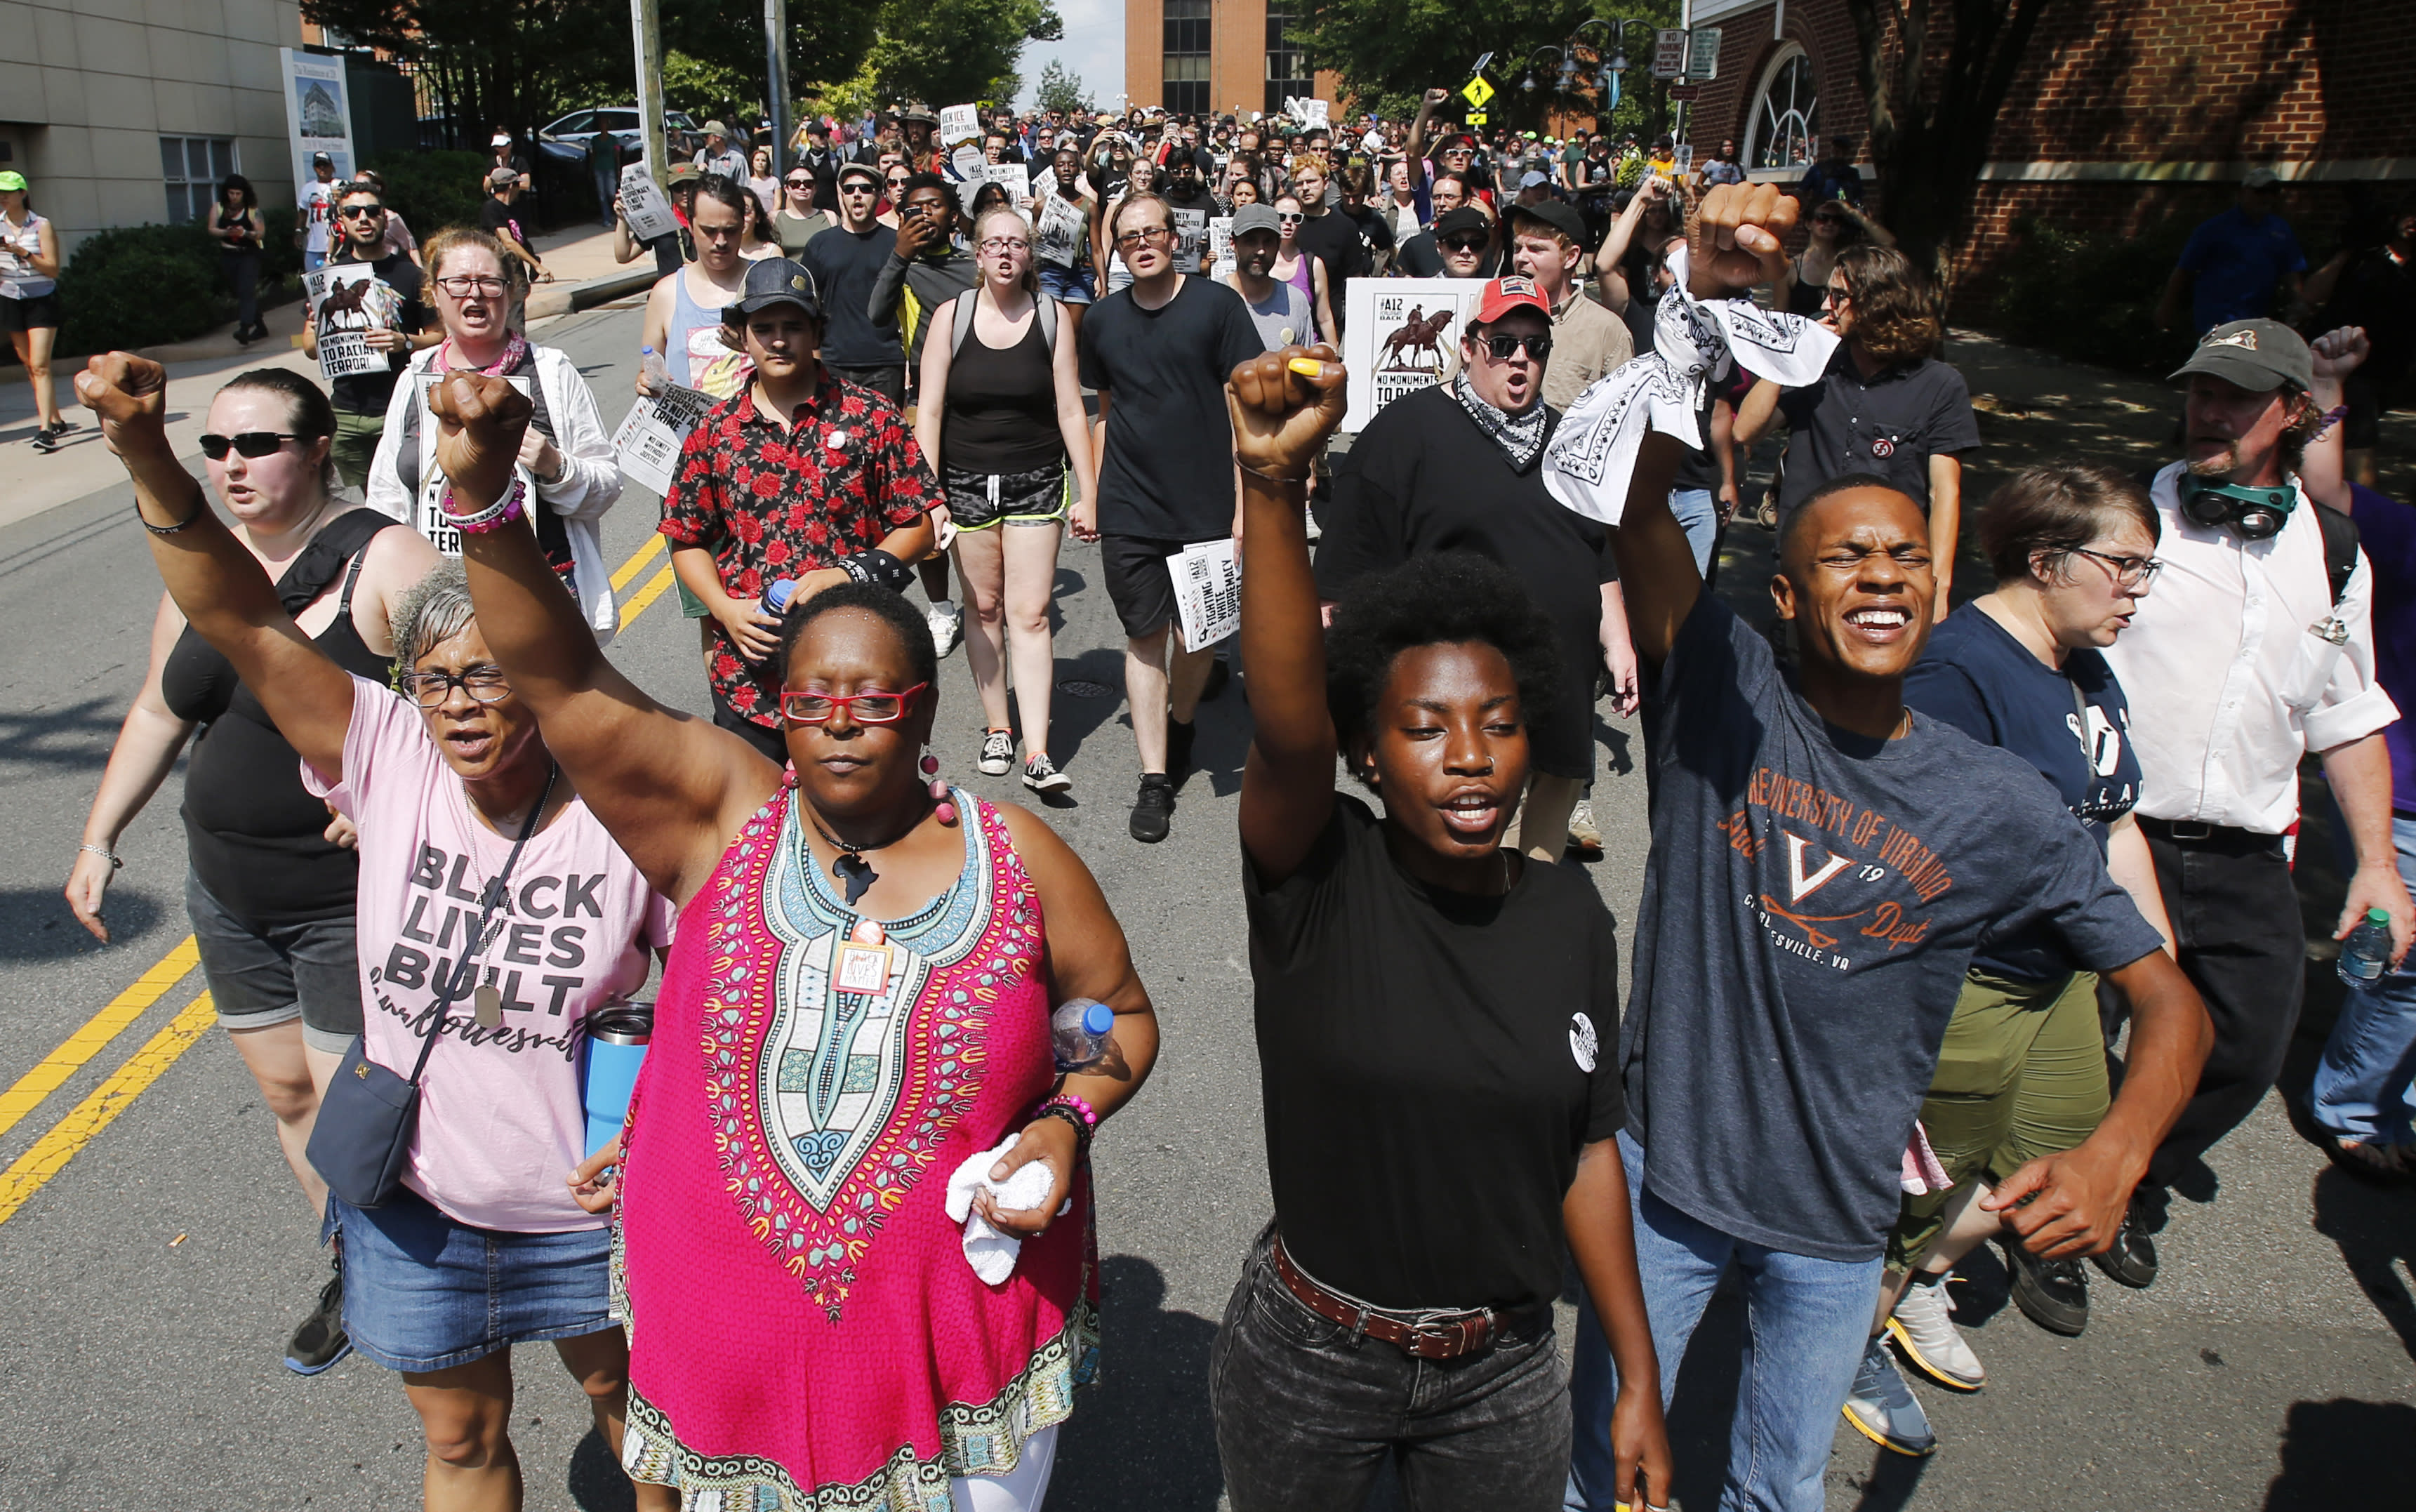 The Latest: Activists gather in Charlottesville